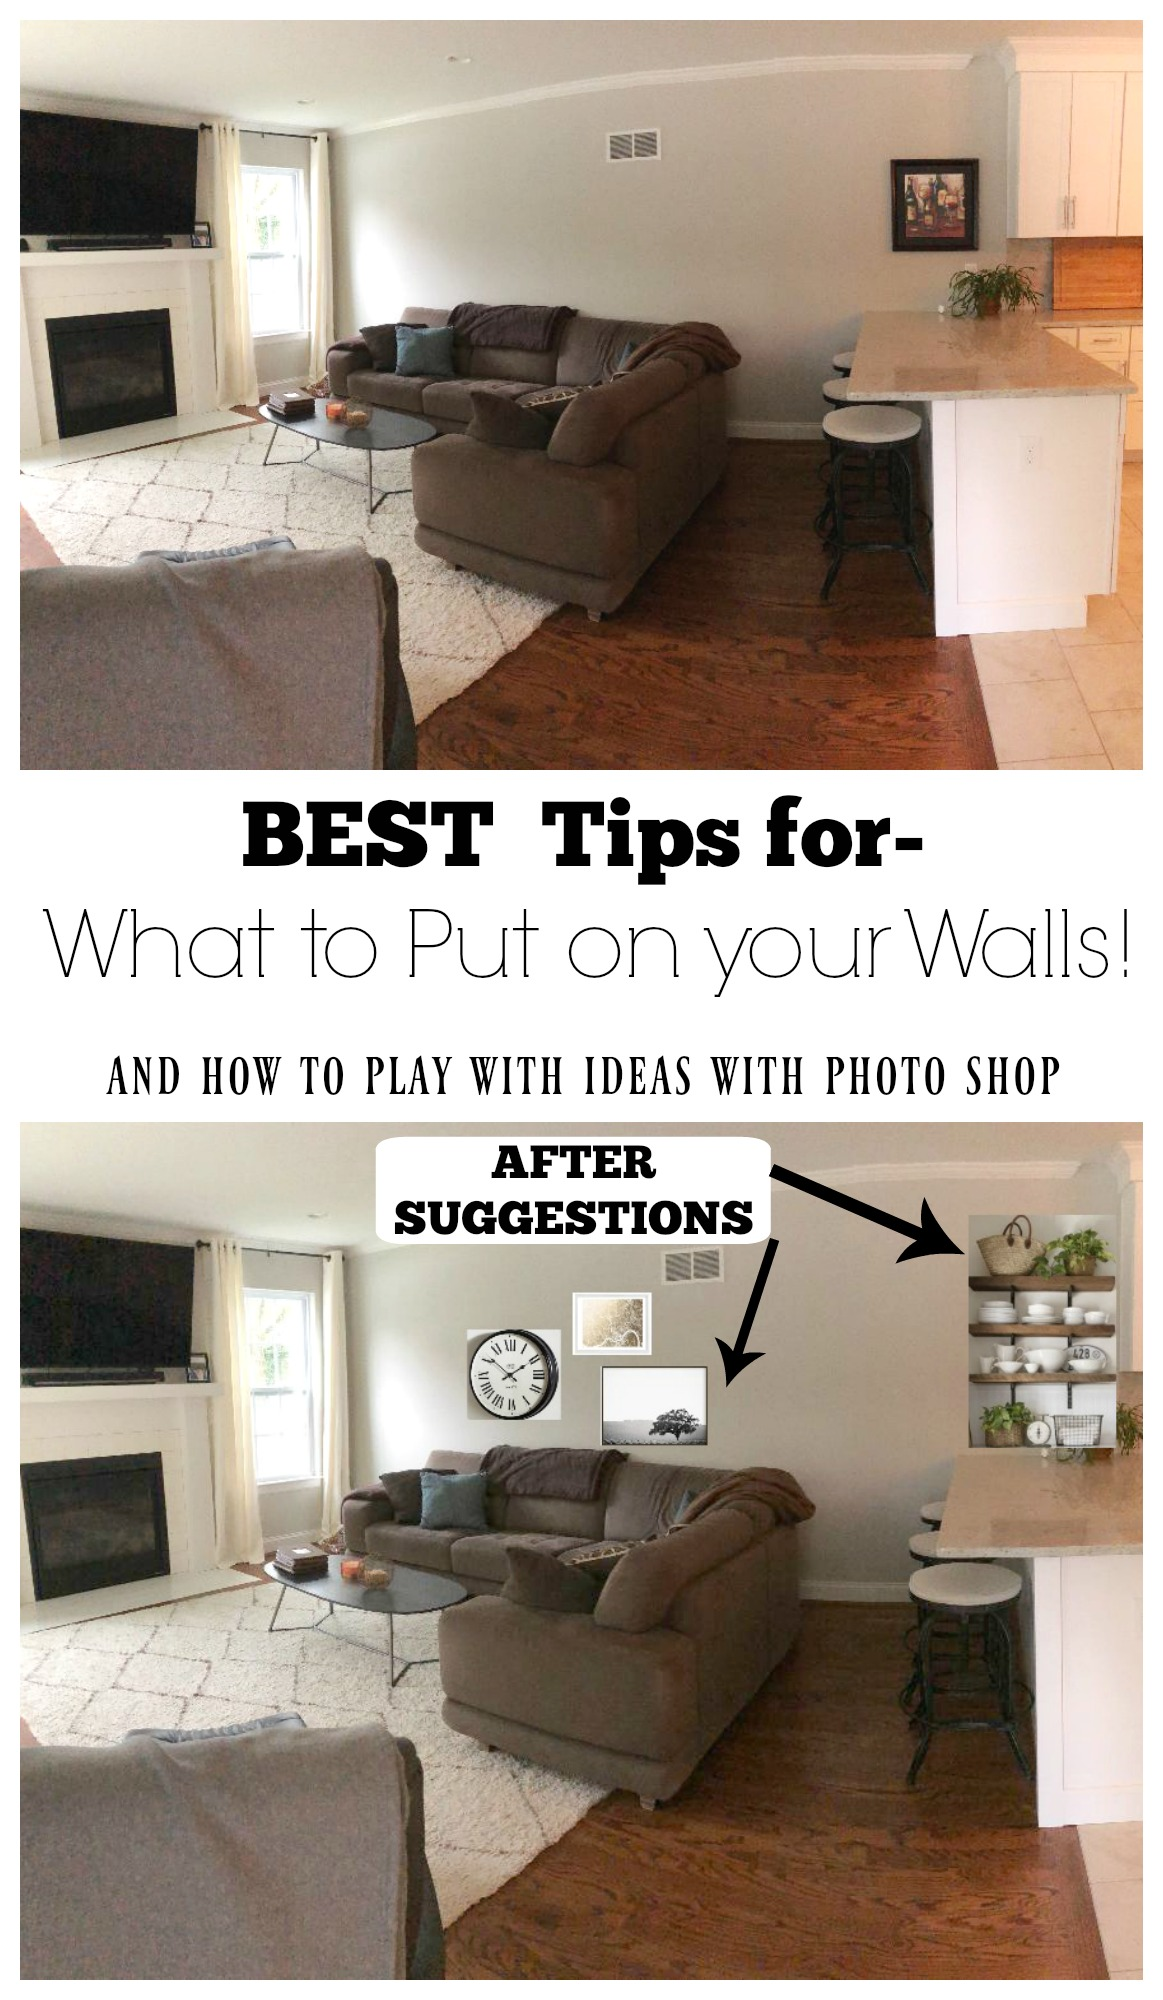 Best Tips for Selecting Artwork for Walls